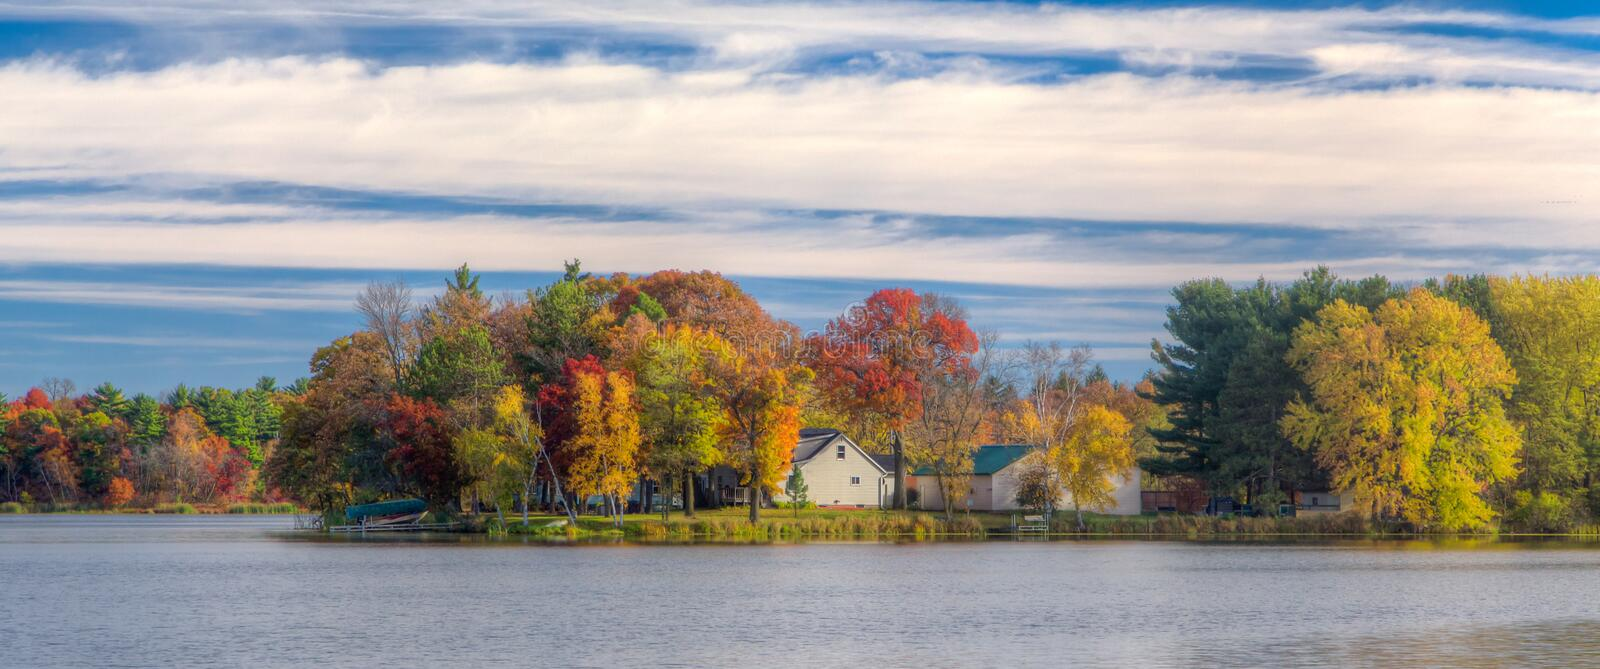 Cinematic Crop of Autumn Vibrant Colors on Apple River stock photos